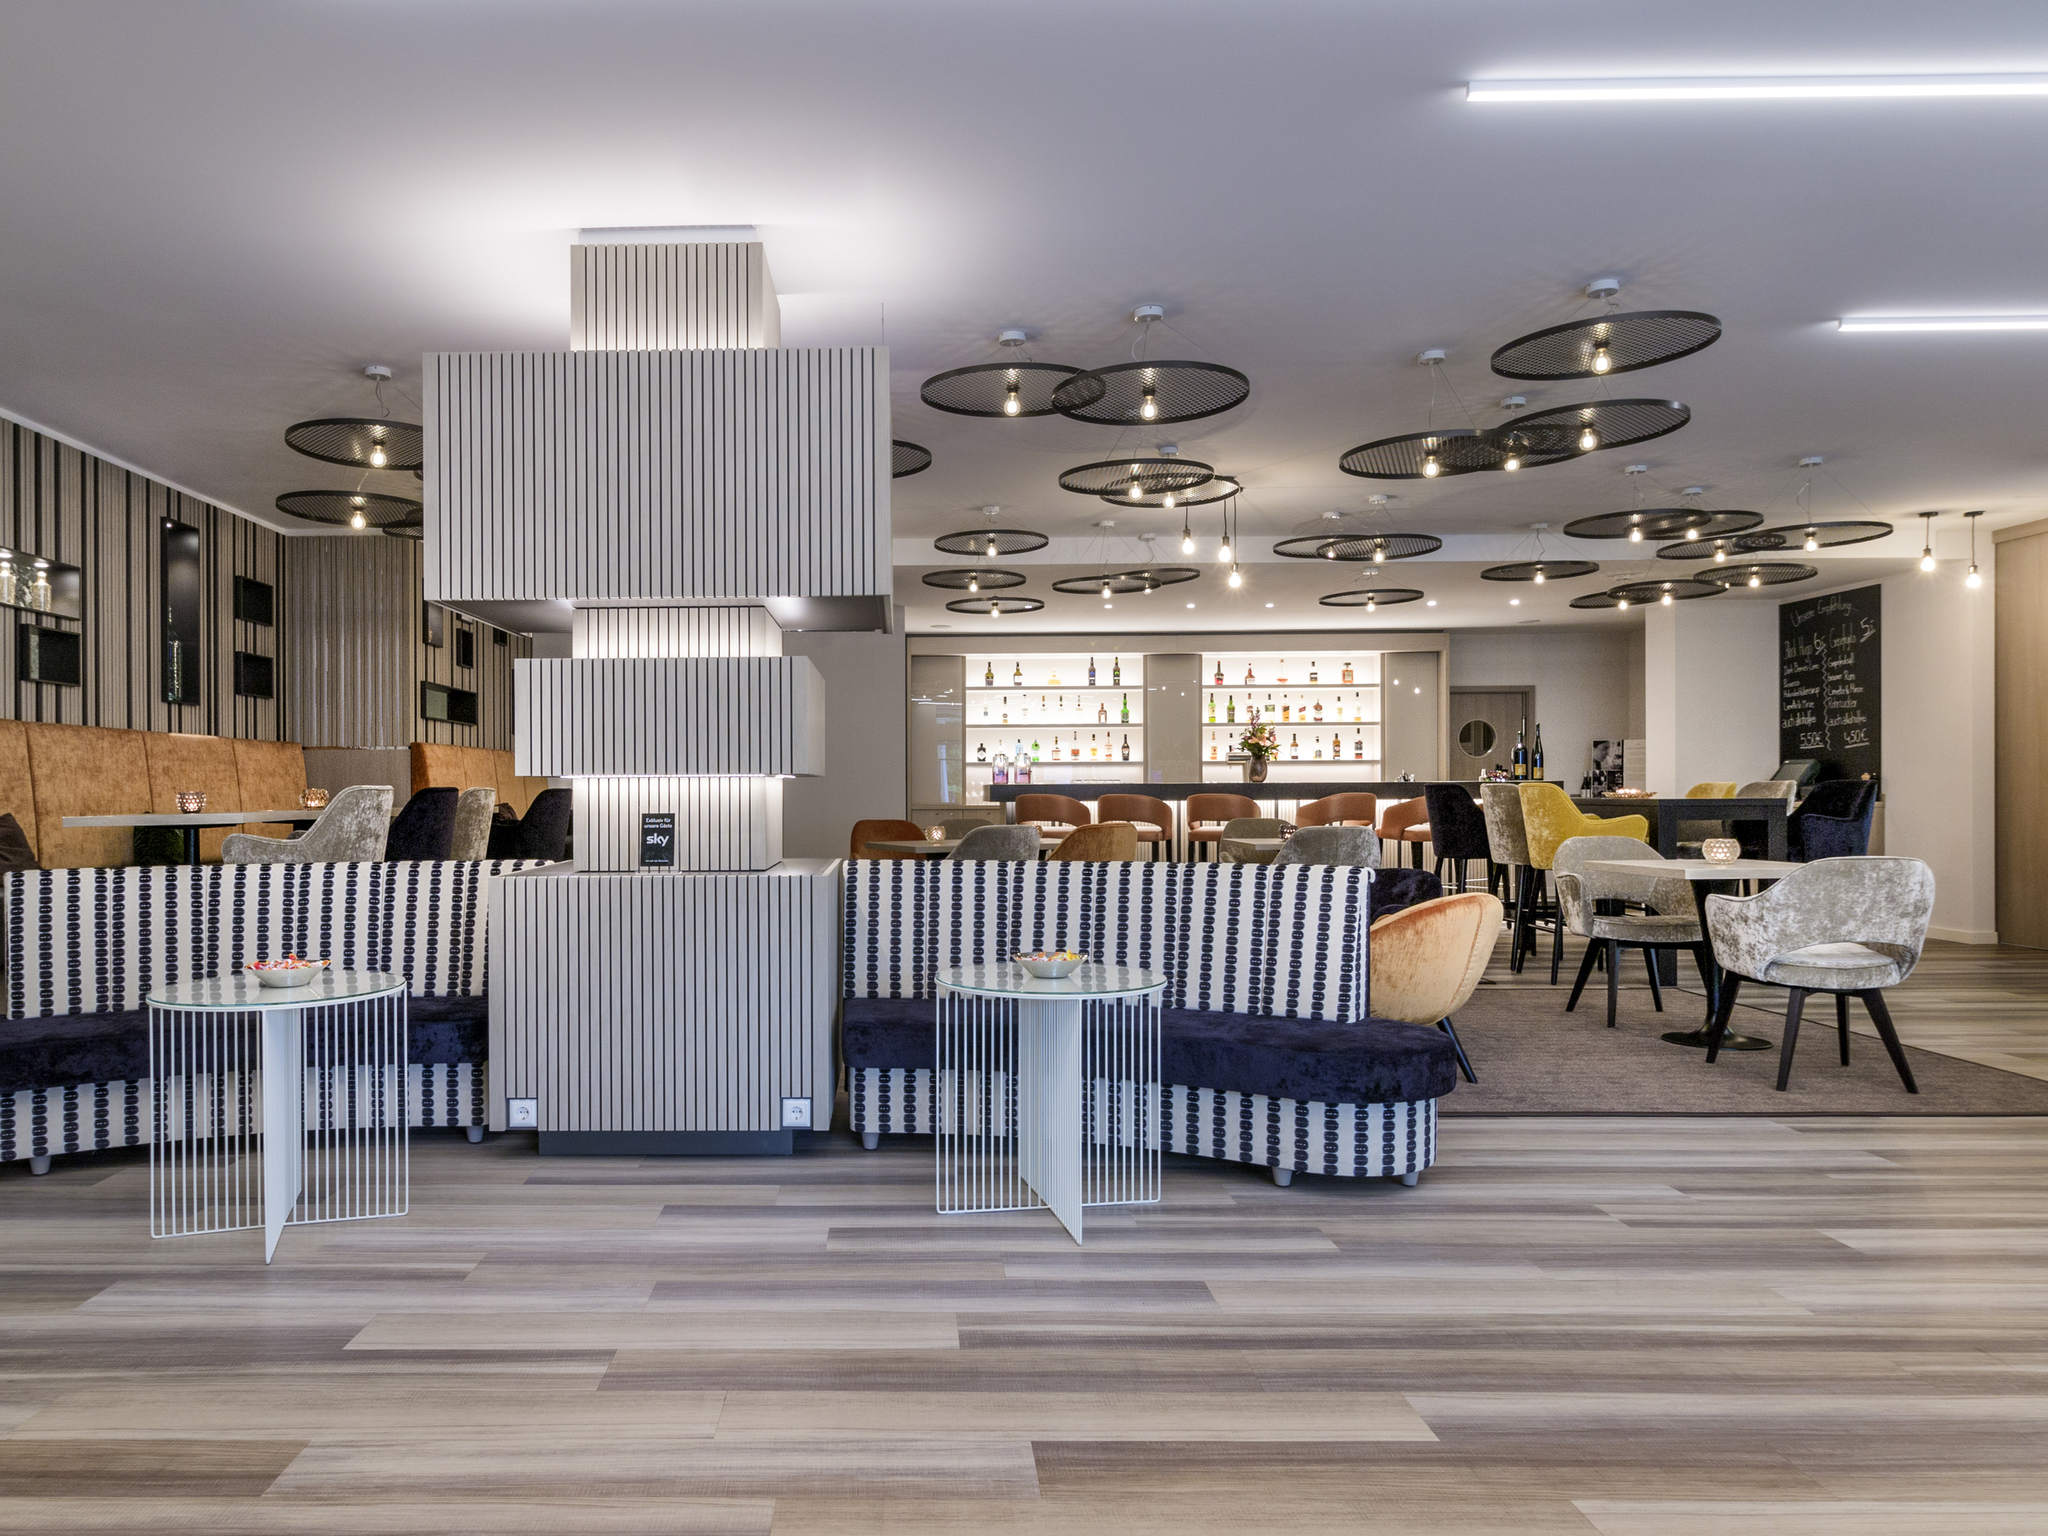 โรงแรม – Mercure Hotel Hannover Oldenburger Allee